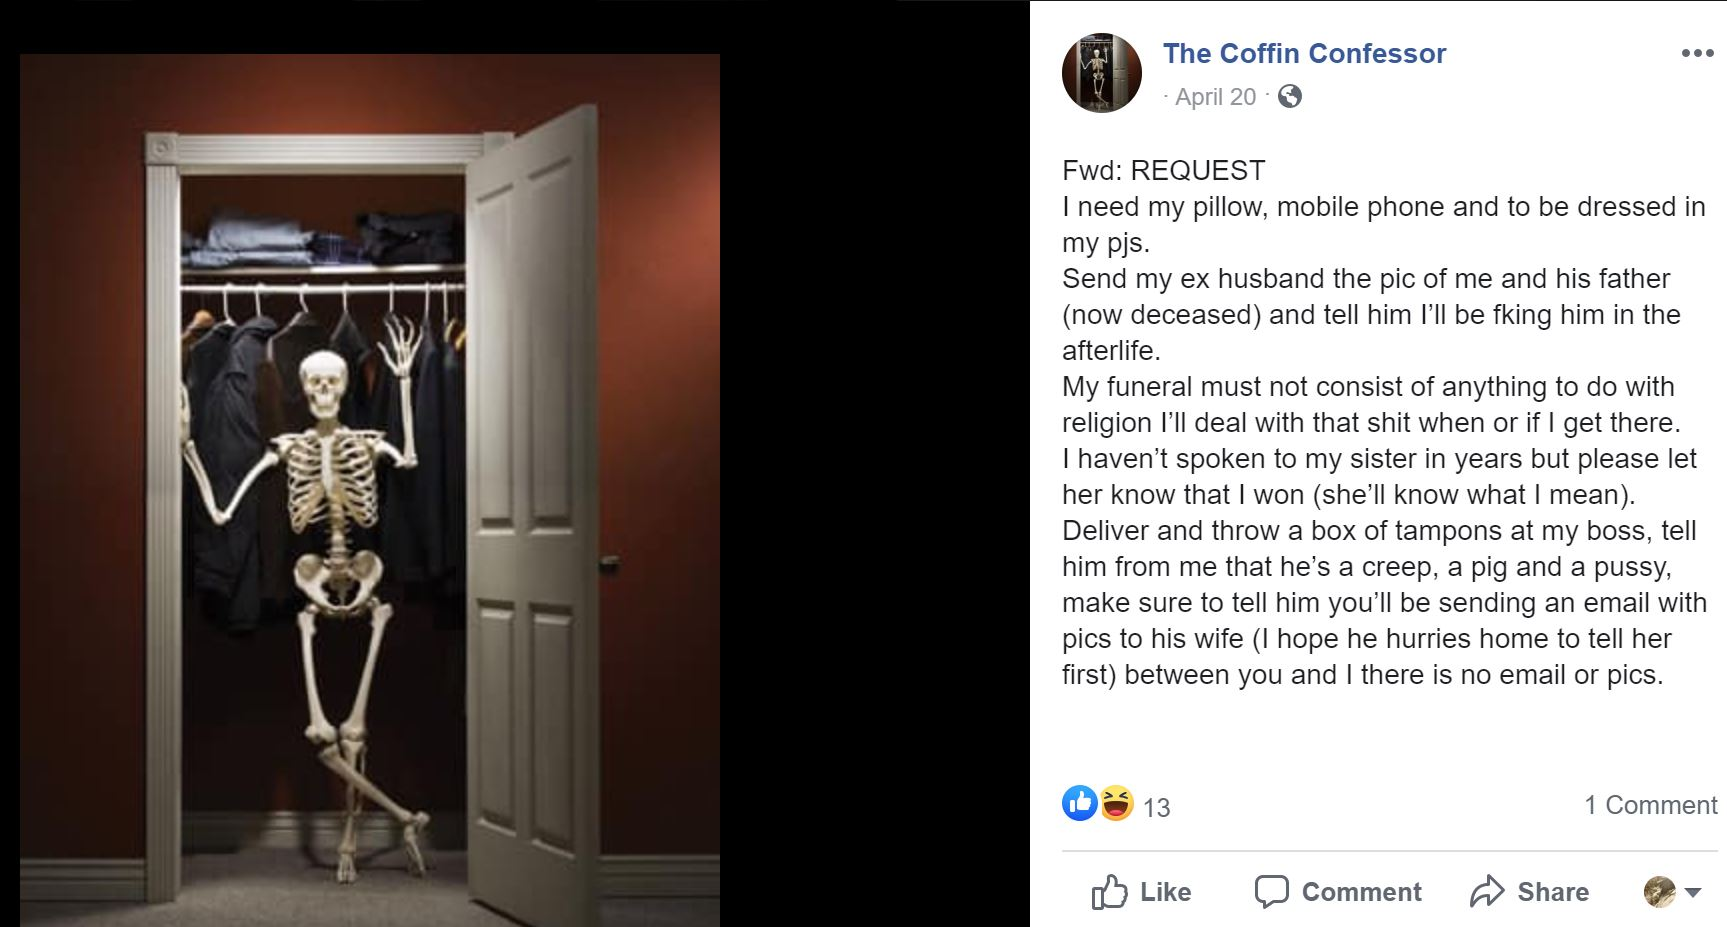 Coffin Confessor Facebook Post